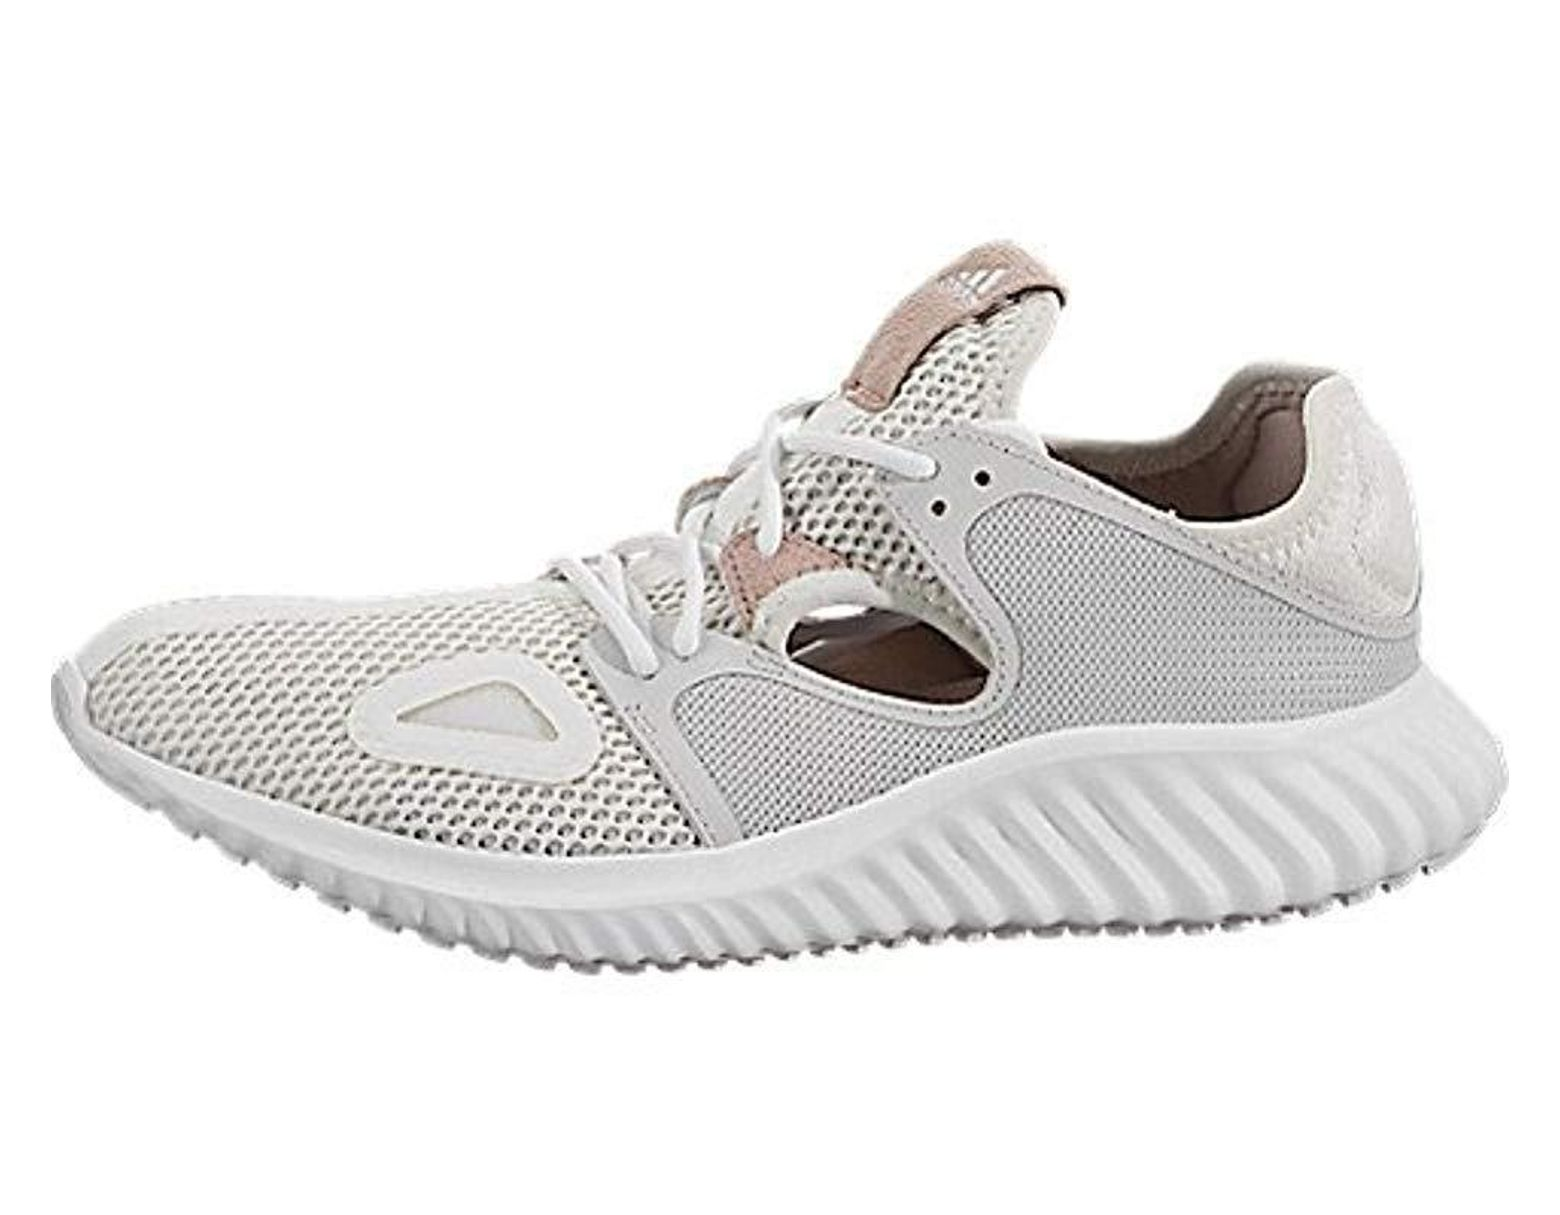 6fd840bfc adidas Lux Clima W Running Shoe in Gray - Save 11% - Lyst